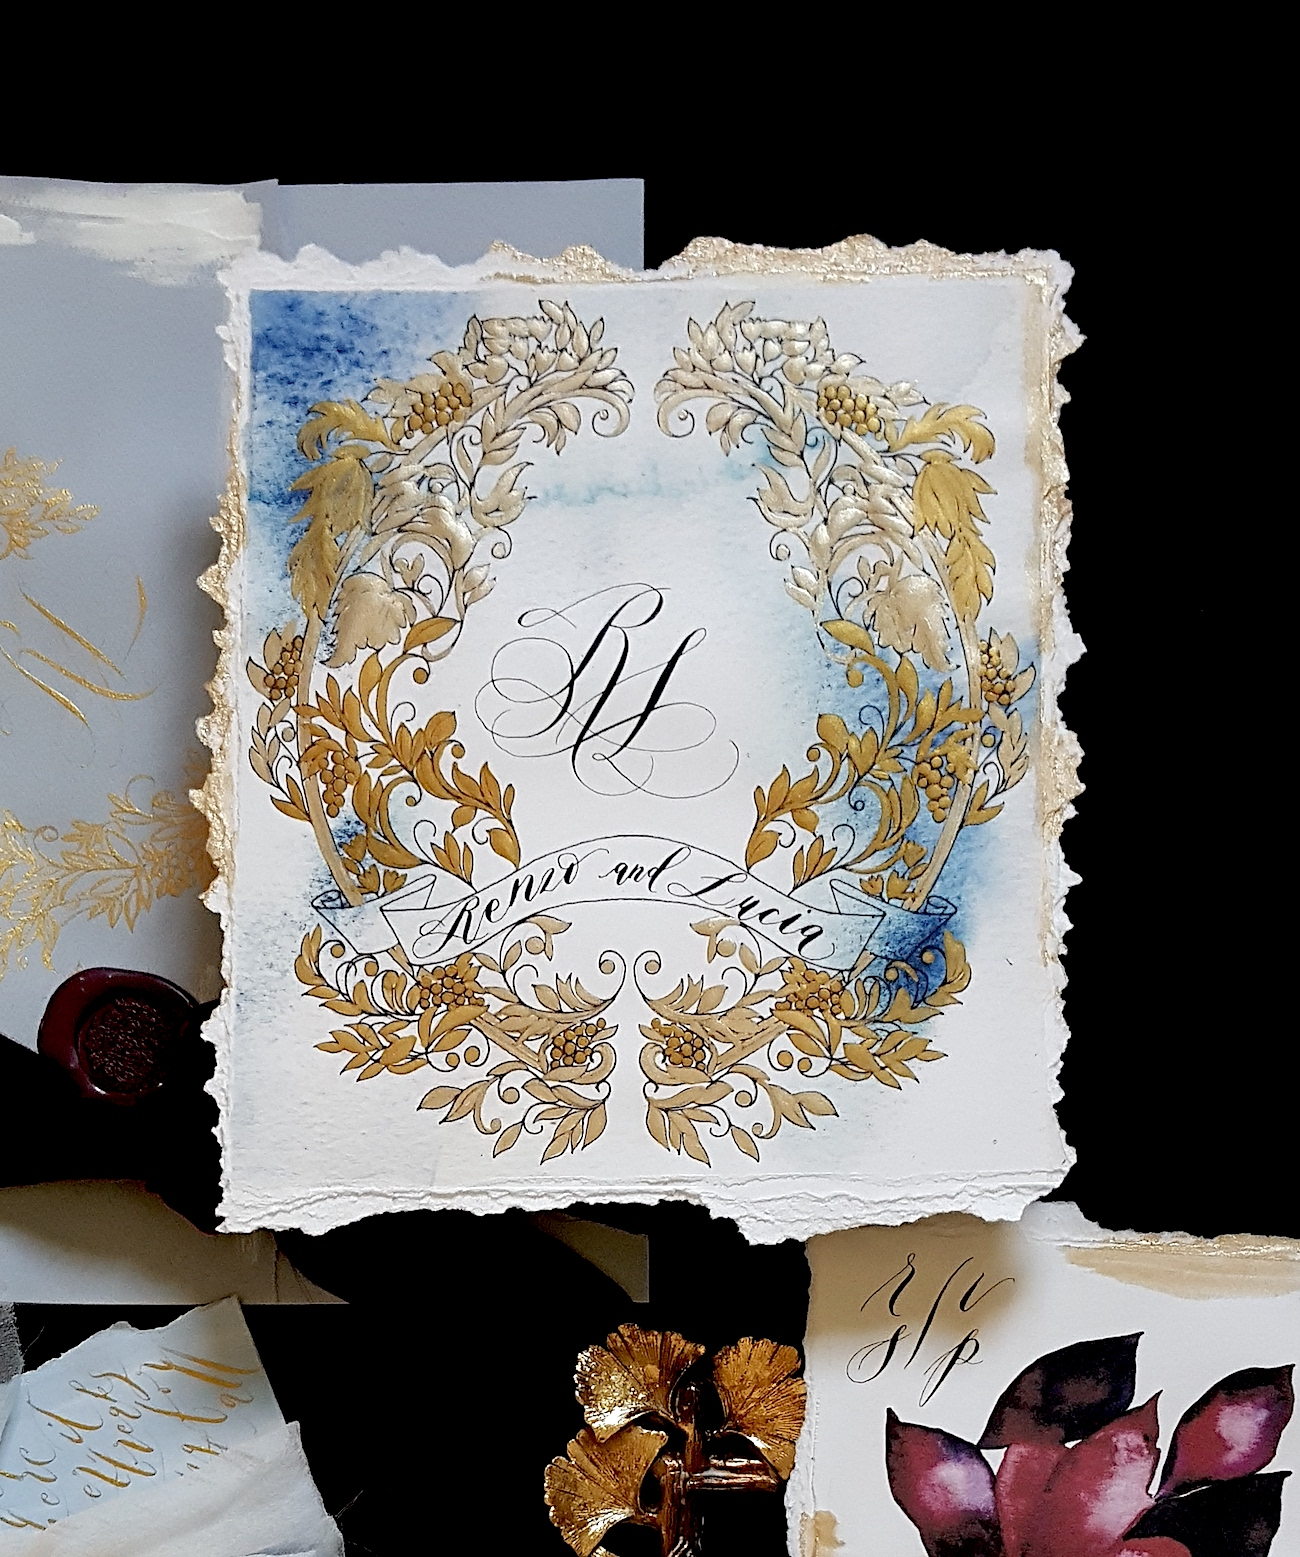 Invitation Glossary - monogram card with couples names